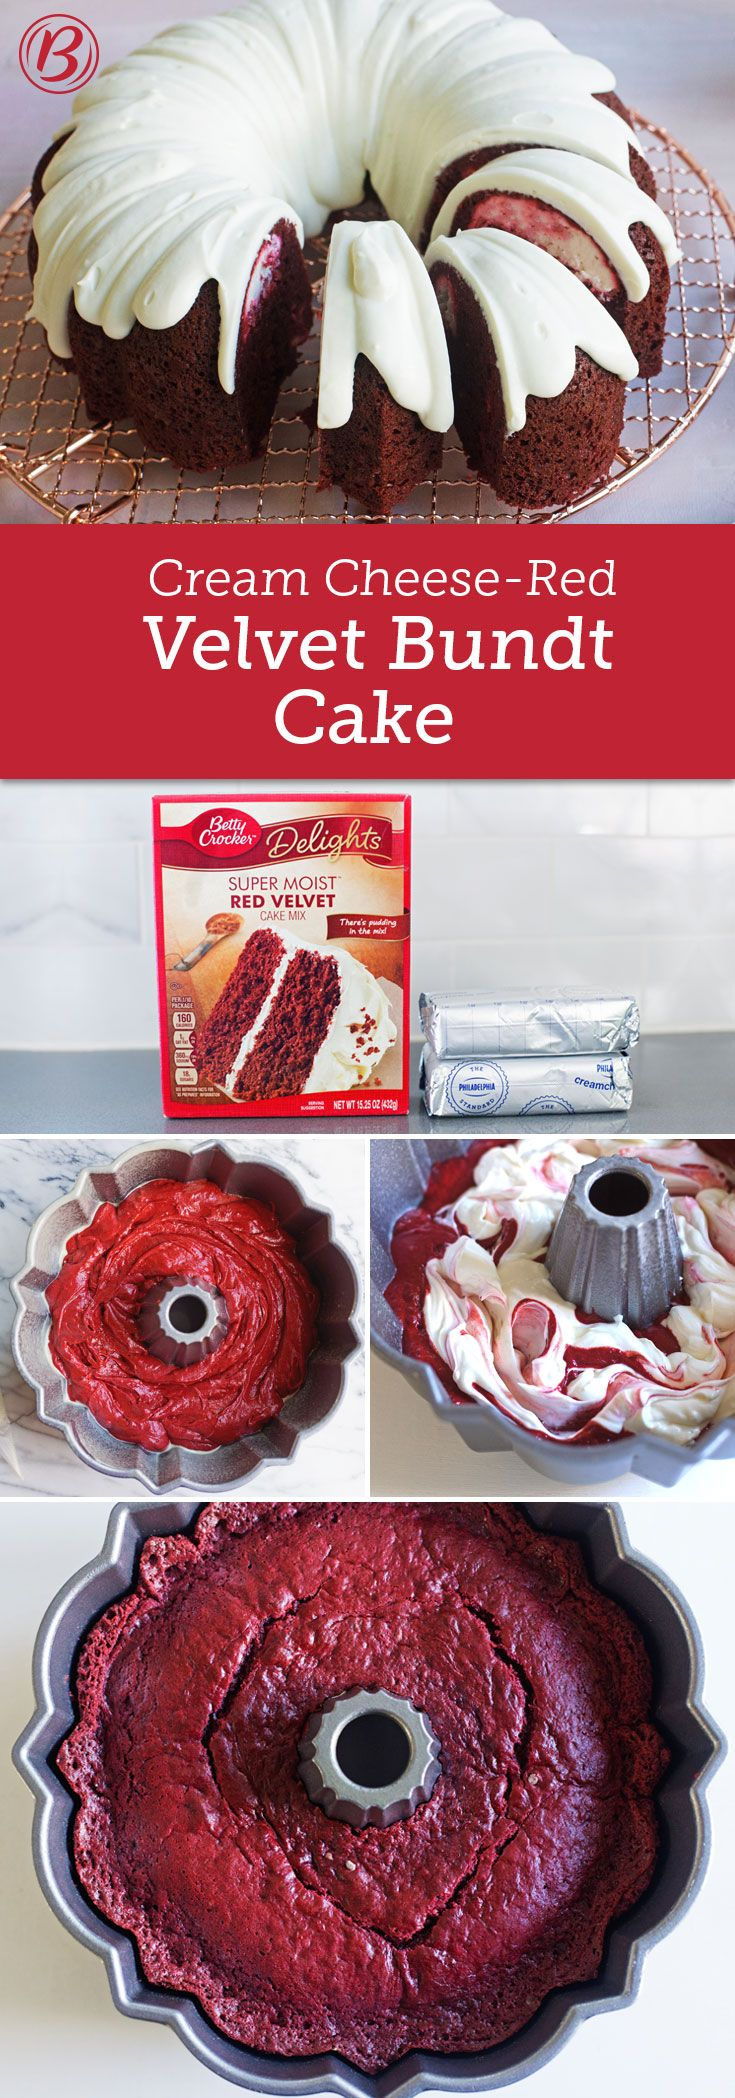 A hidden layer of sweetened cream cheese, give this red velvet Bundt a little something extra. If you can't find our red velvet cake mix, substitute a box of our SuperMoist™ German chocolate cake mix along with a 1-oz bottle red food coloring. Bake the cake as directed above, and mix the food color in with the eggs and sour cream.